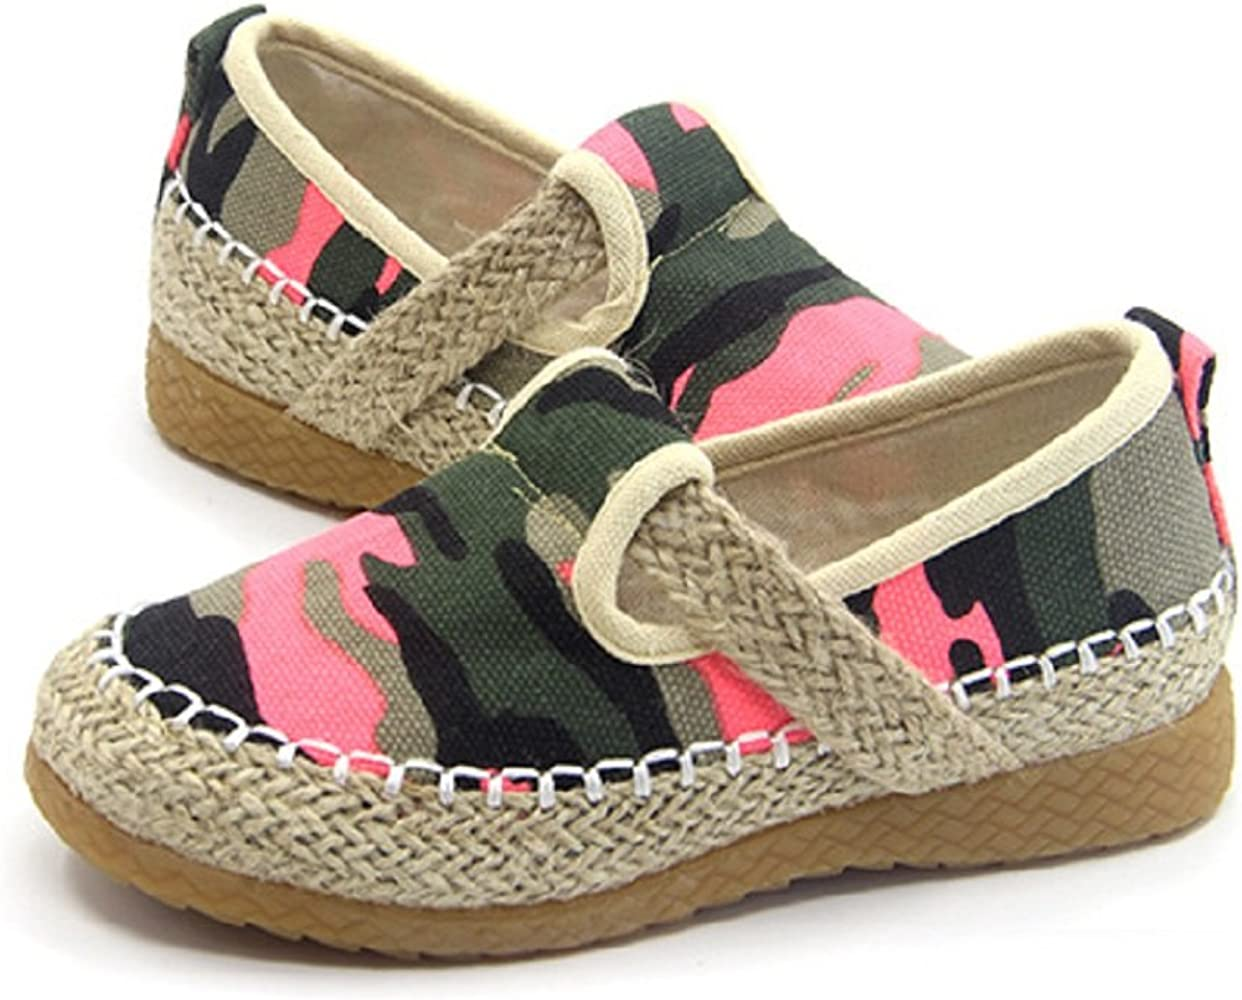 Tianrui Crown Boys Camouflage Printed Loafer Shoes Kids Cute Flat Shoe